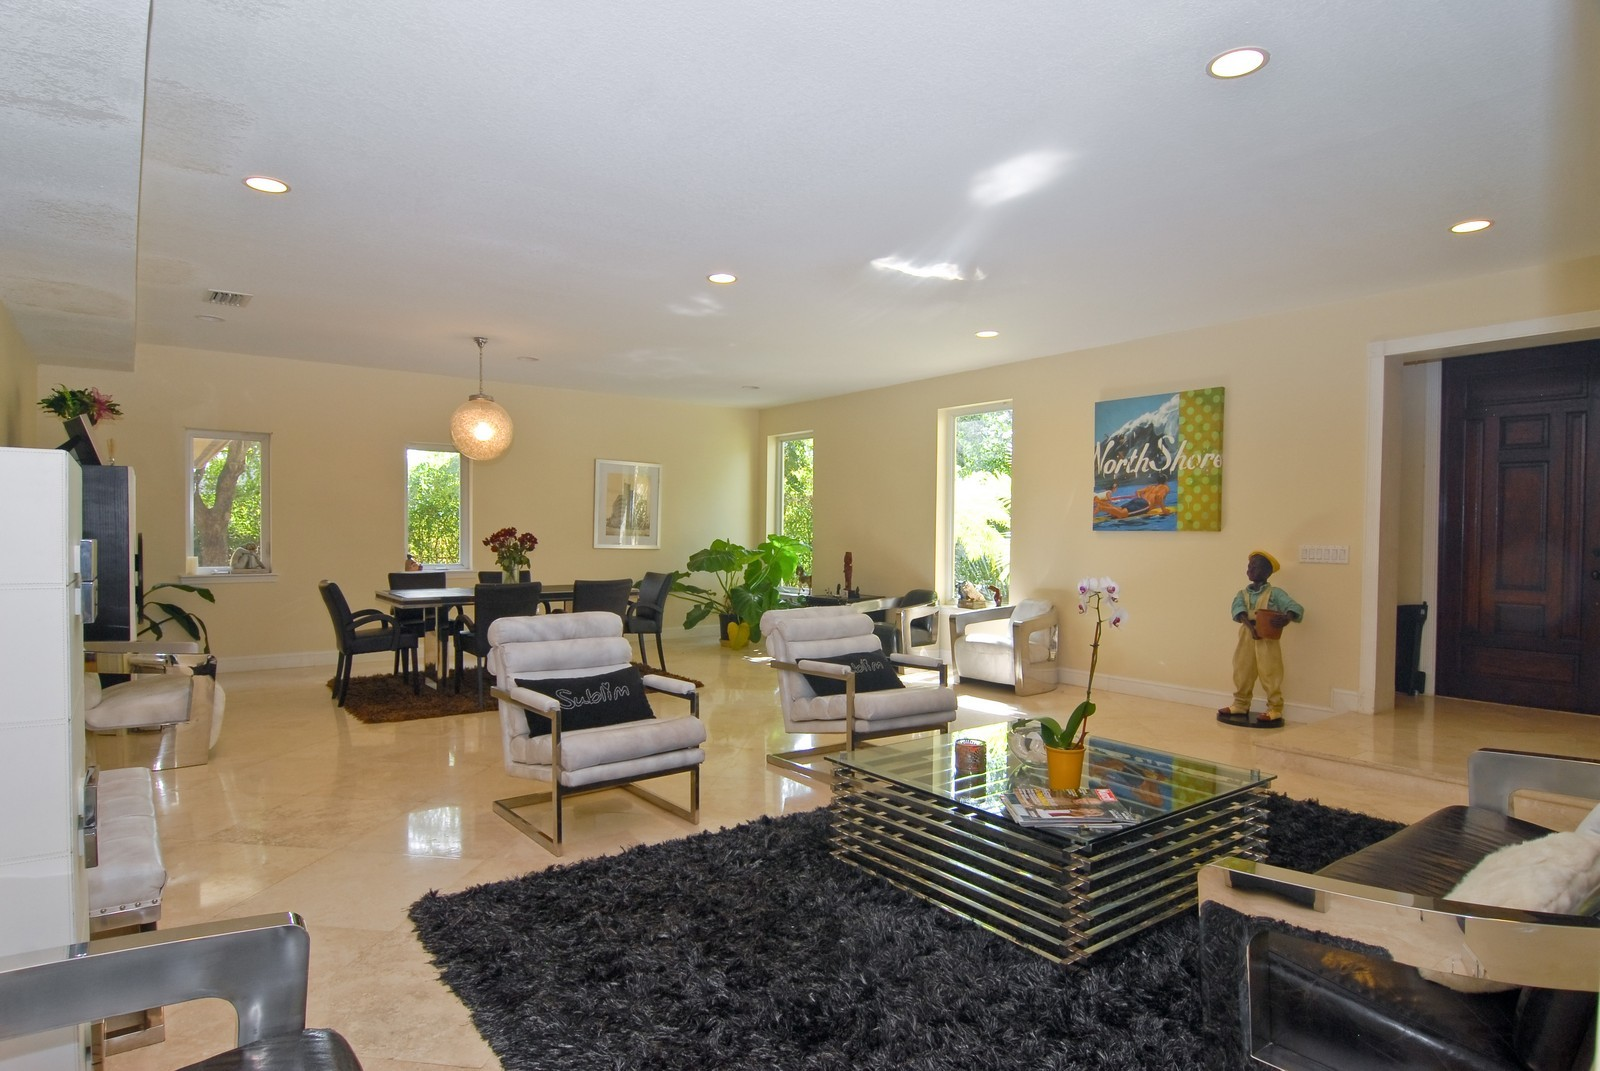 Real Estate Photography - 9263 SW 136th Ter, Miami, FL, 33176 - Living Room / Dining Room